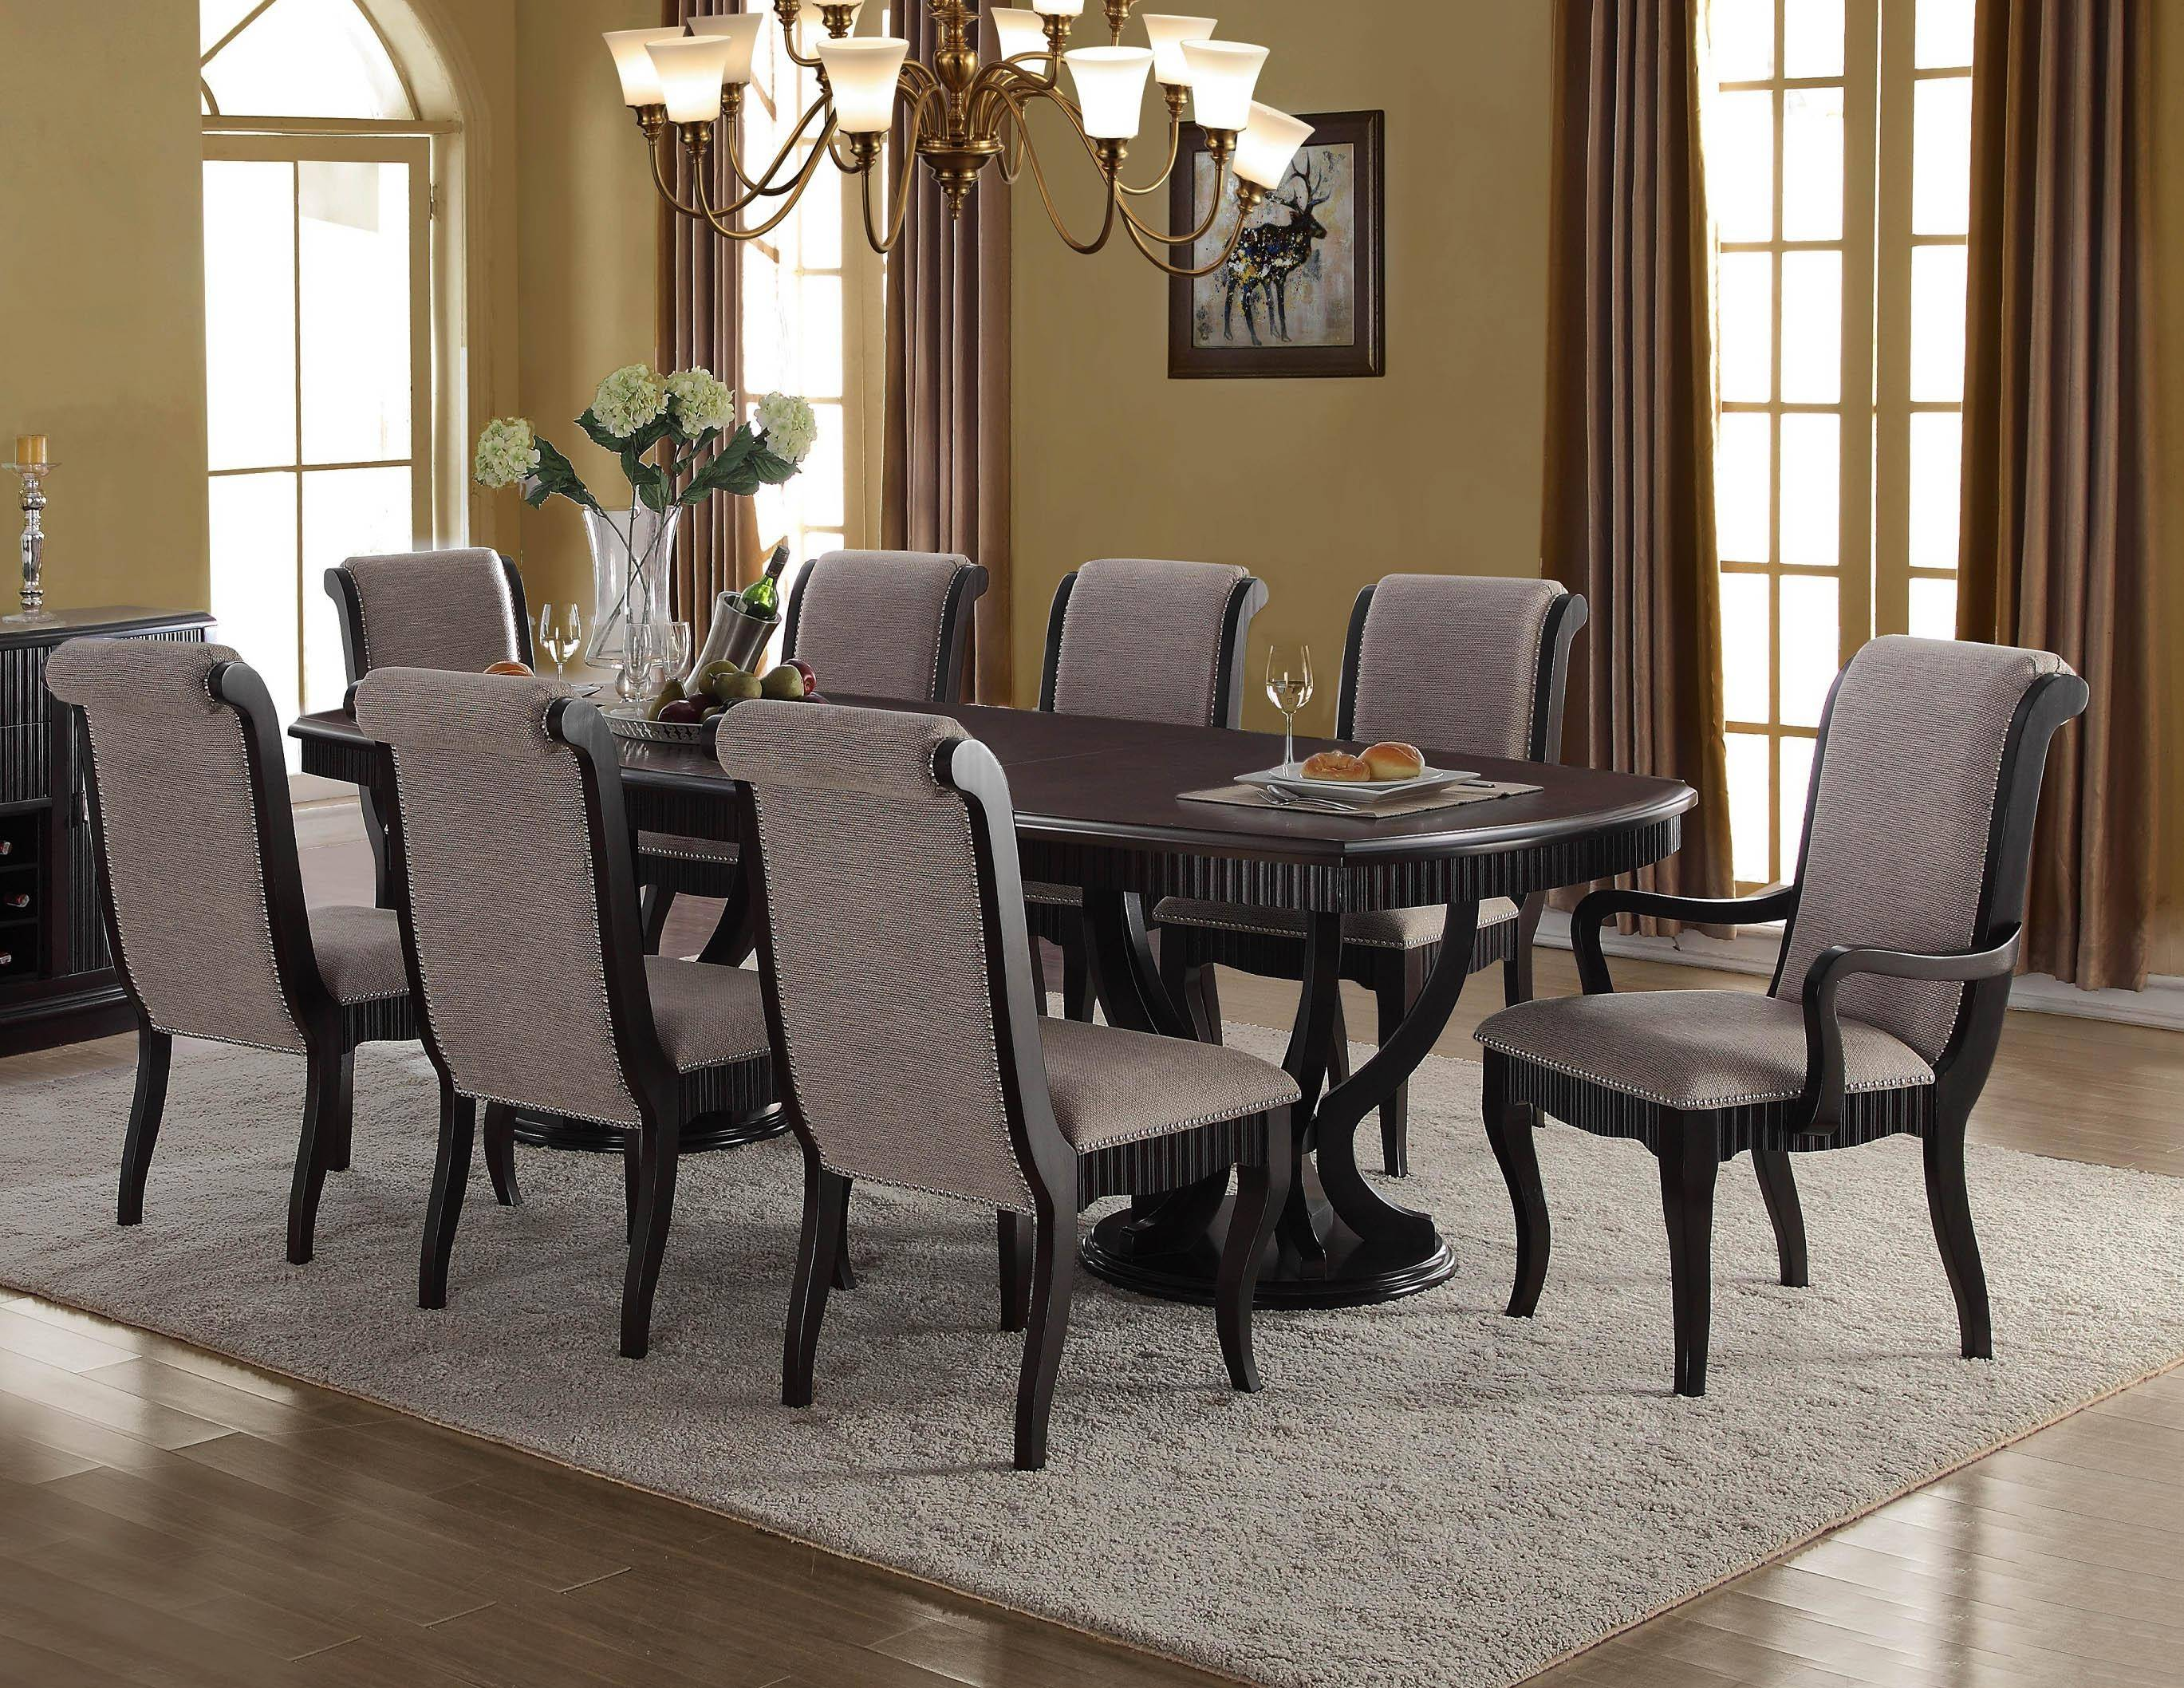 Buy Mcferran D1600 Dining Table Set 8 Pcs In Black Gray Fabric Online